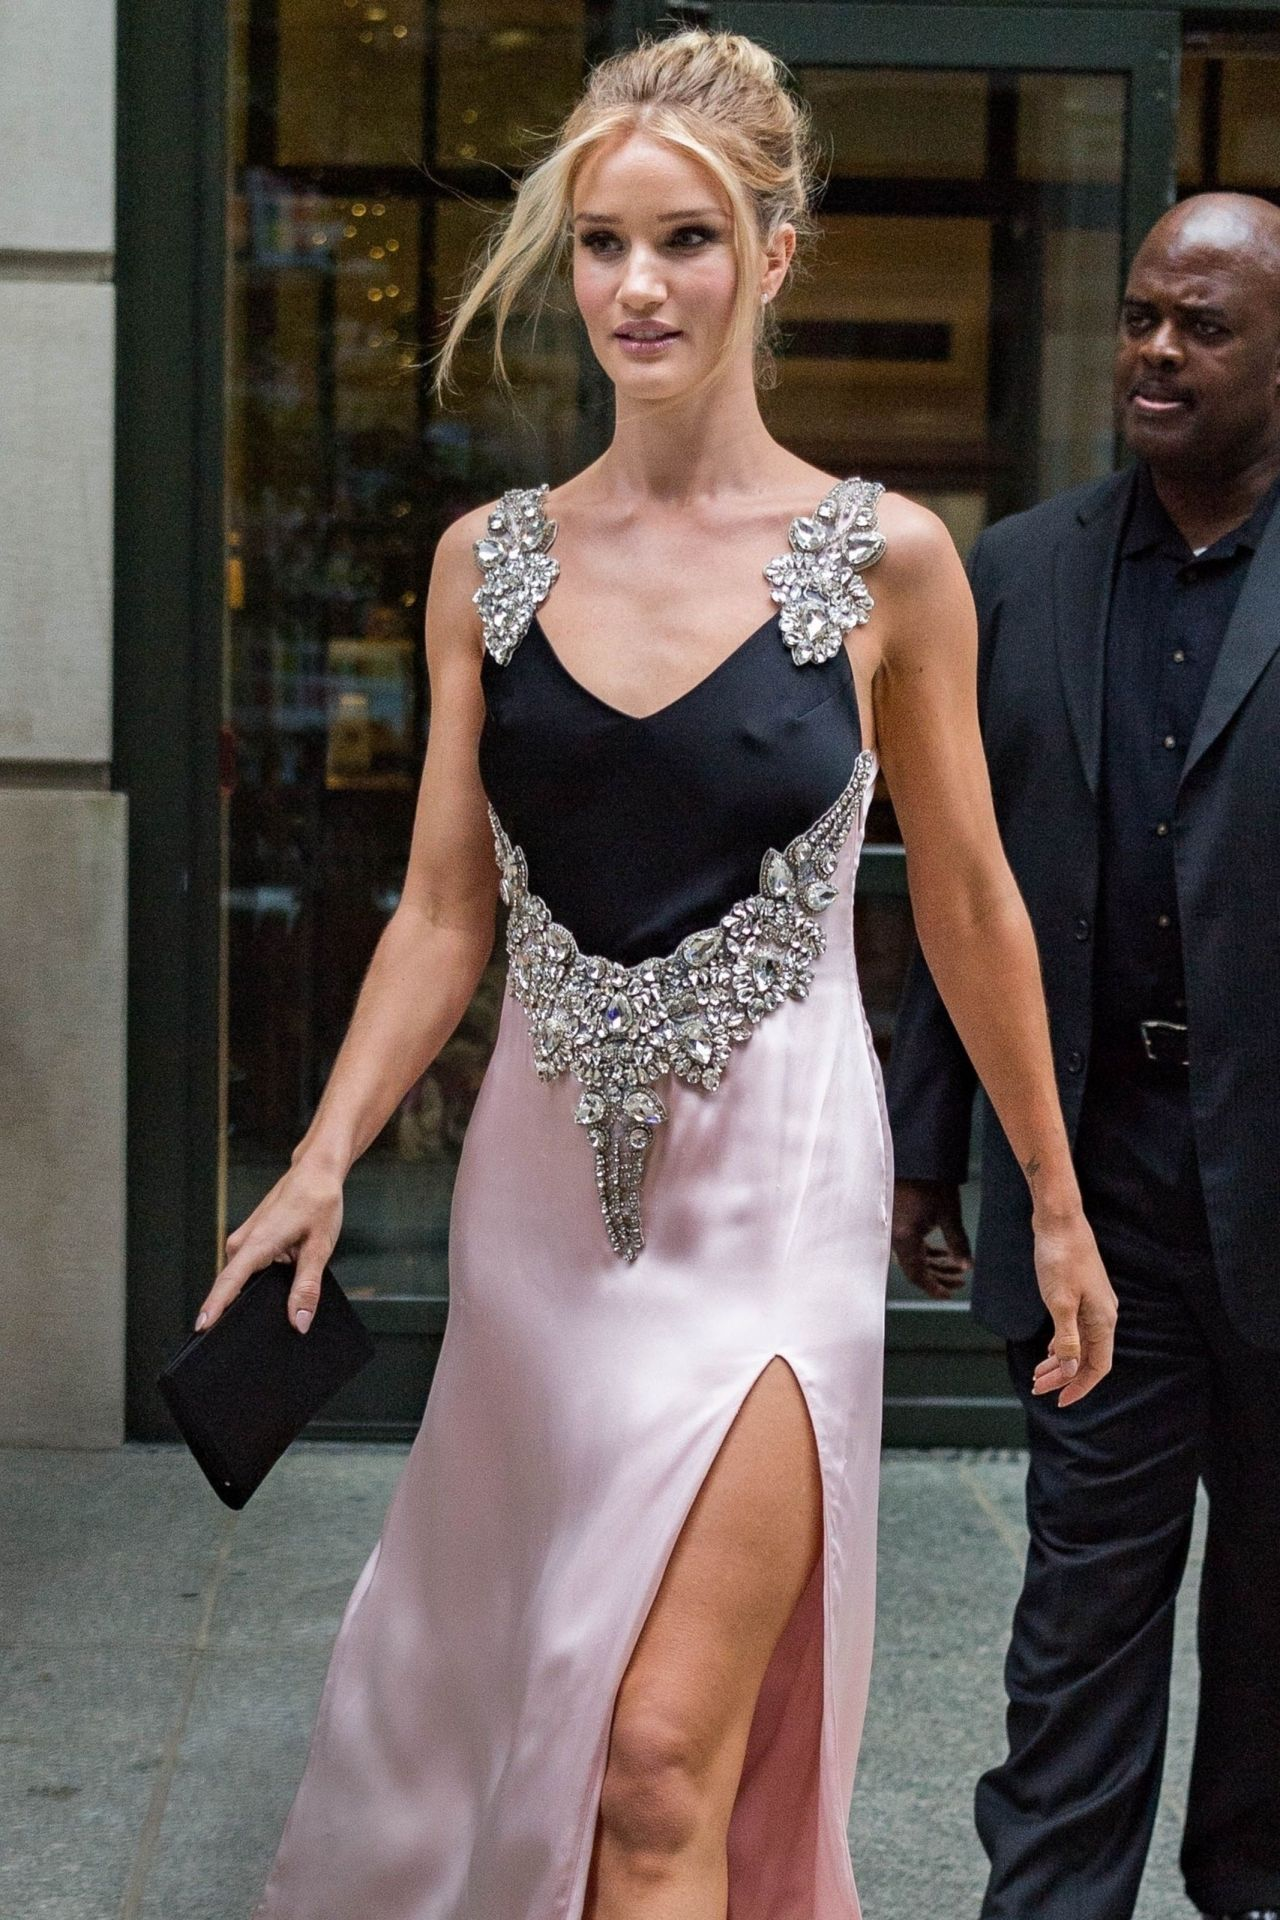 Rosie Huntington Whiteley Leaving Her Hotel In New York